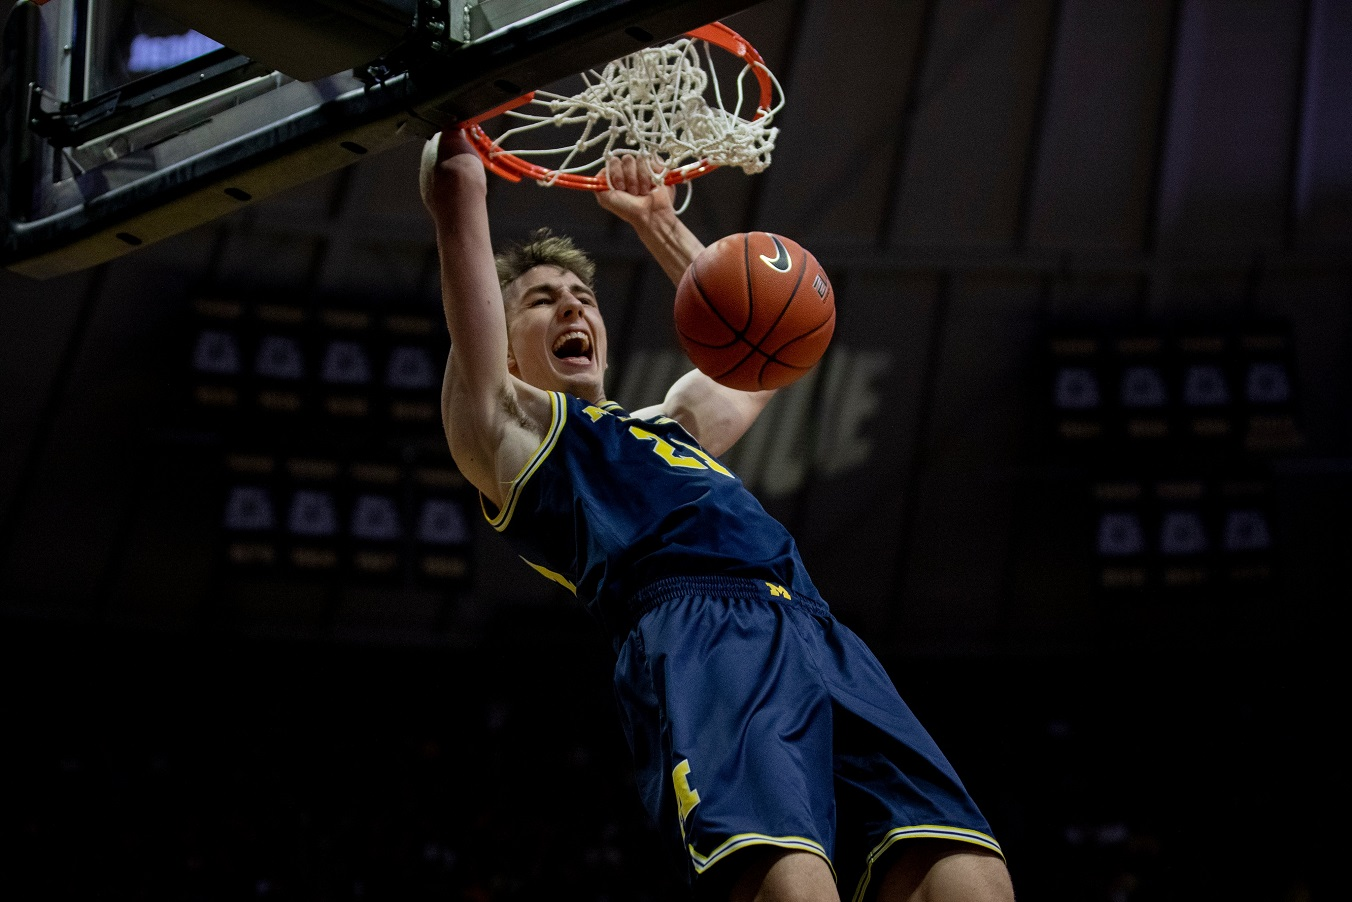 Franz Wagner Michigan at Purdue Top 5 Europei in NCAA